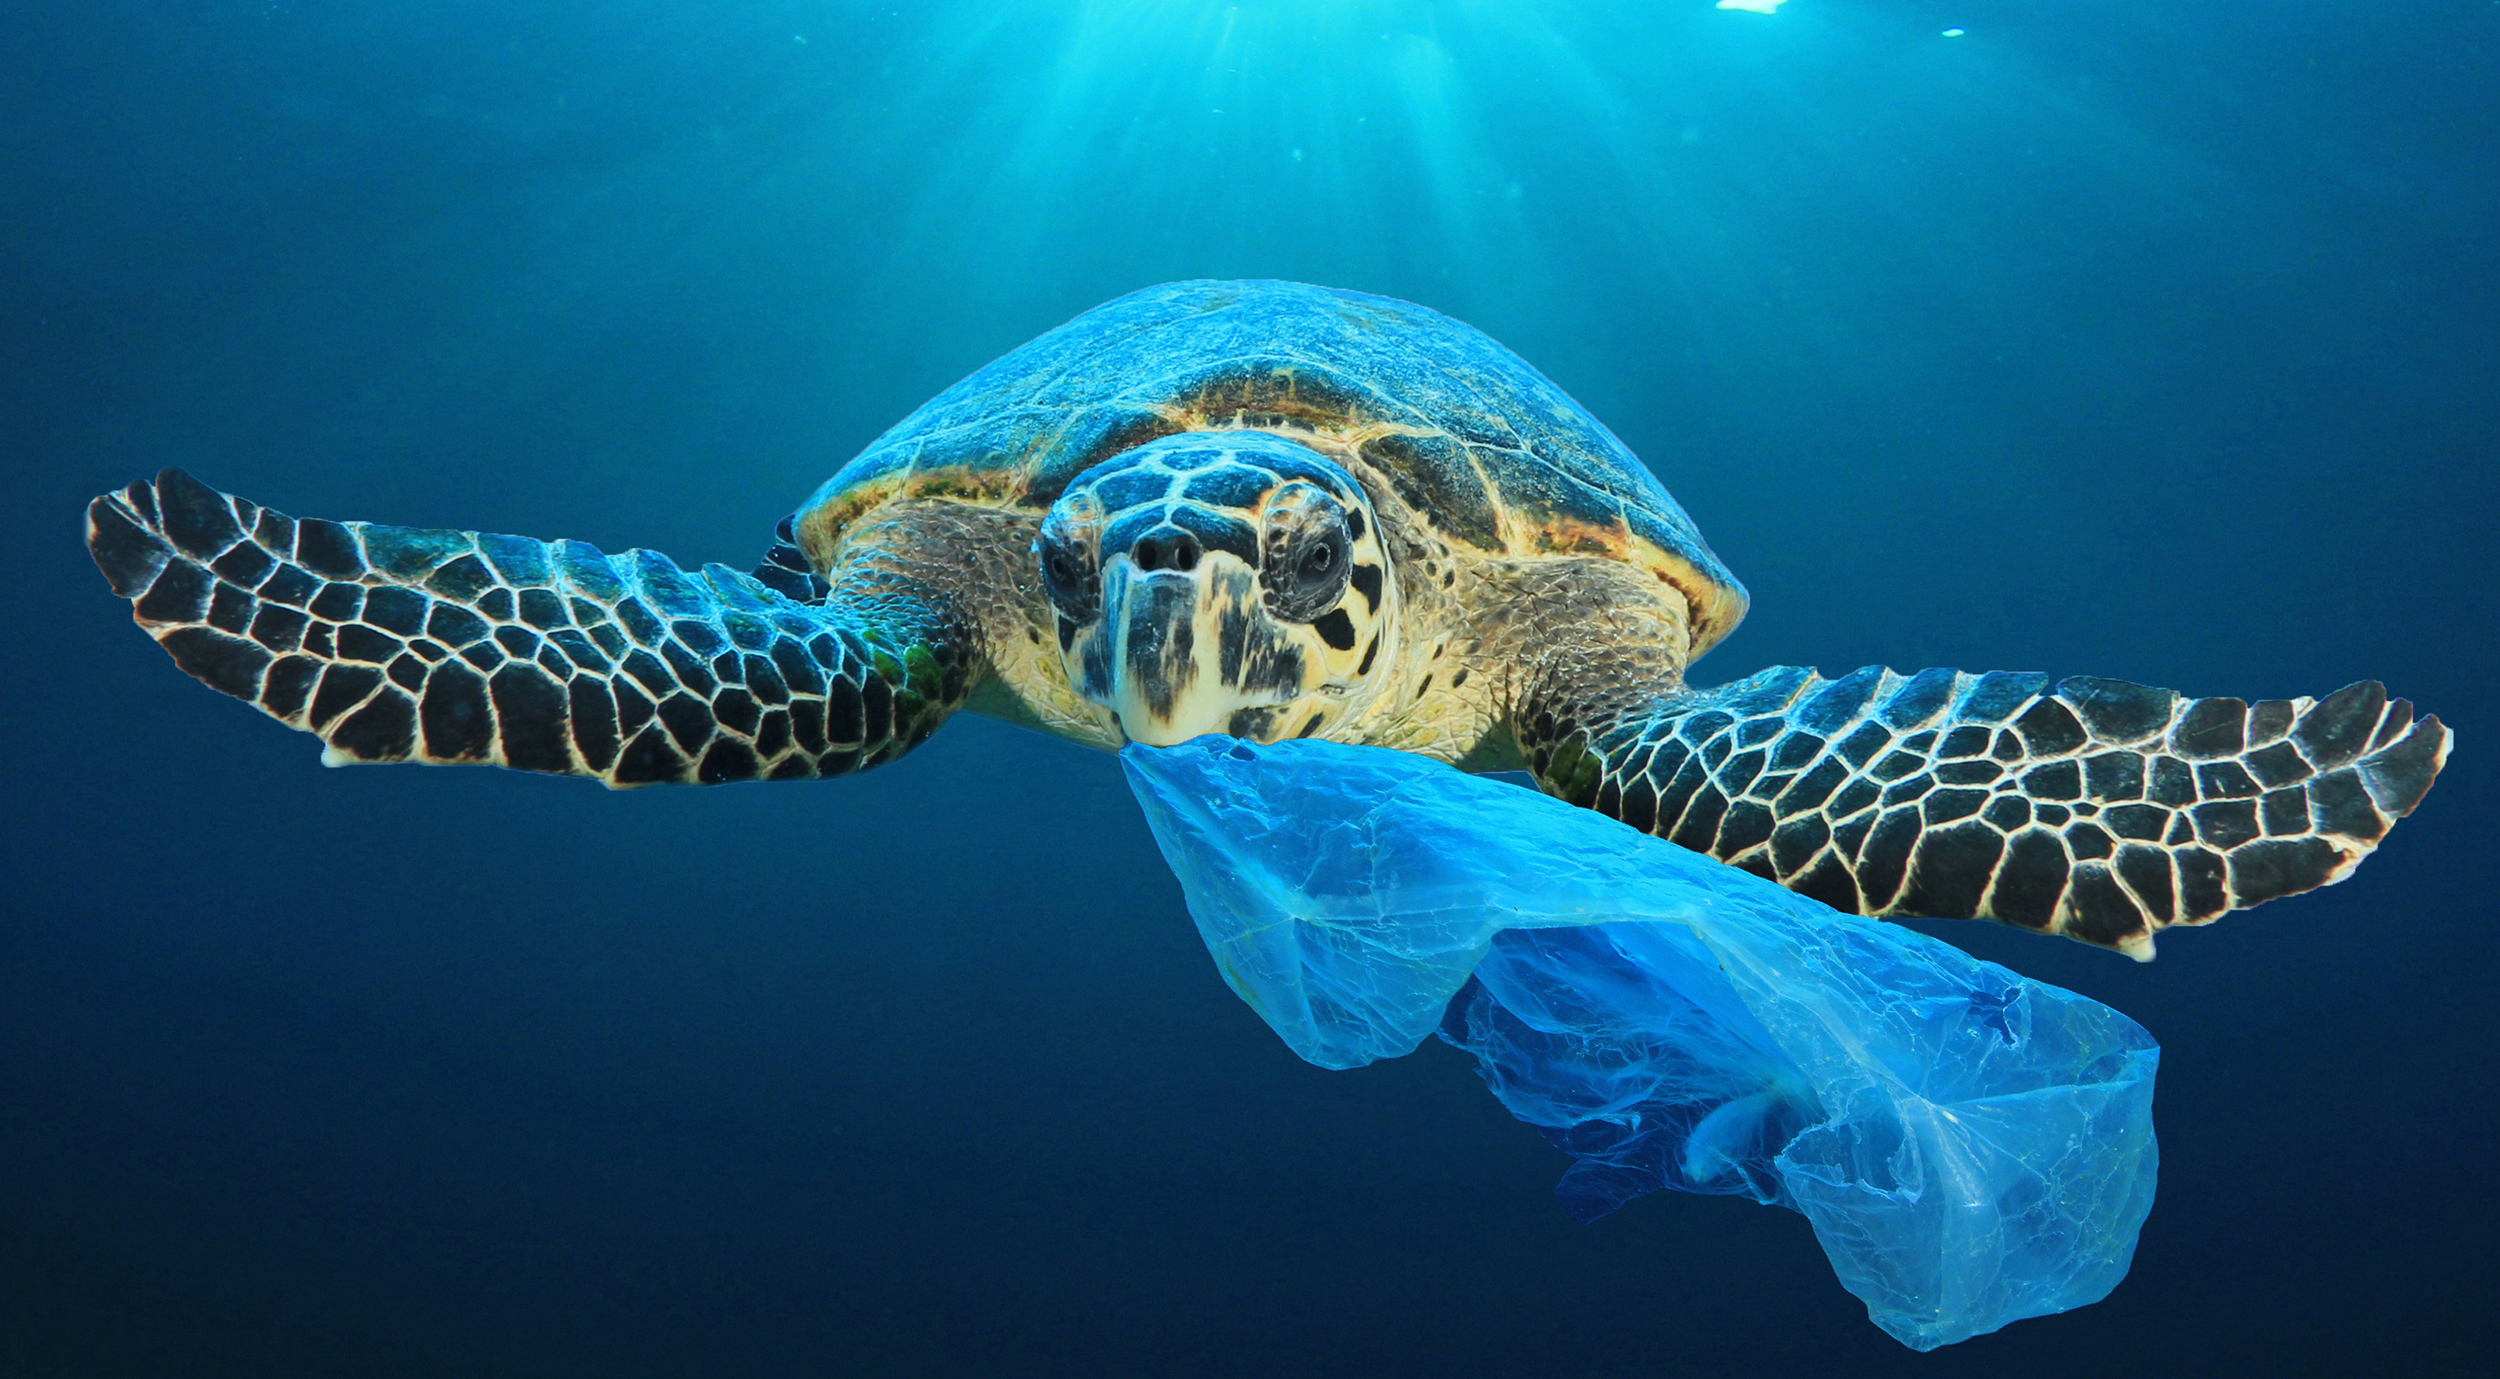 turtle with plastic bag in mouth.jpg